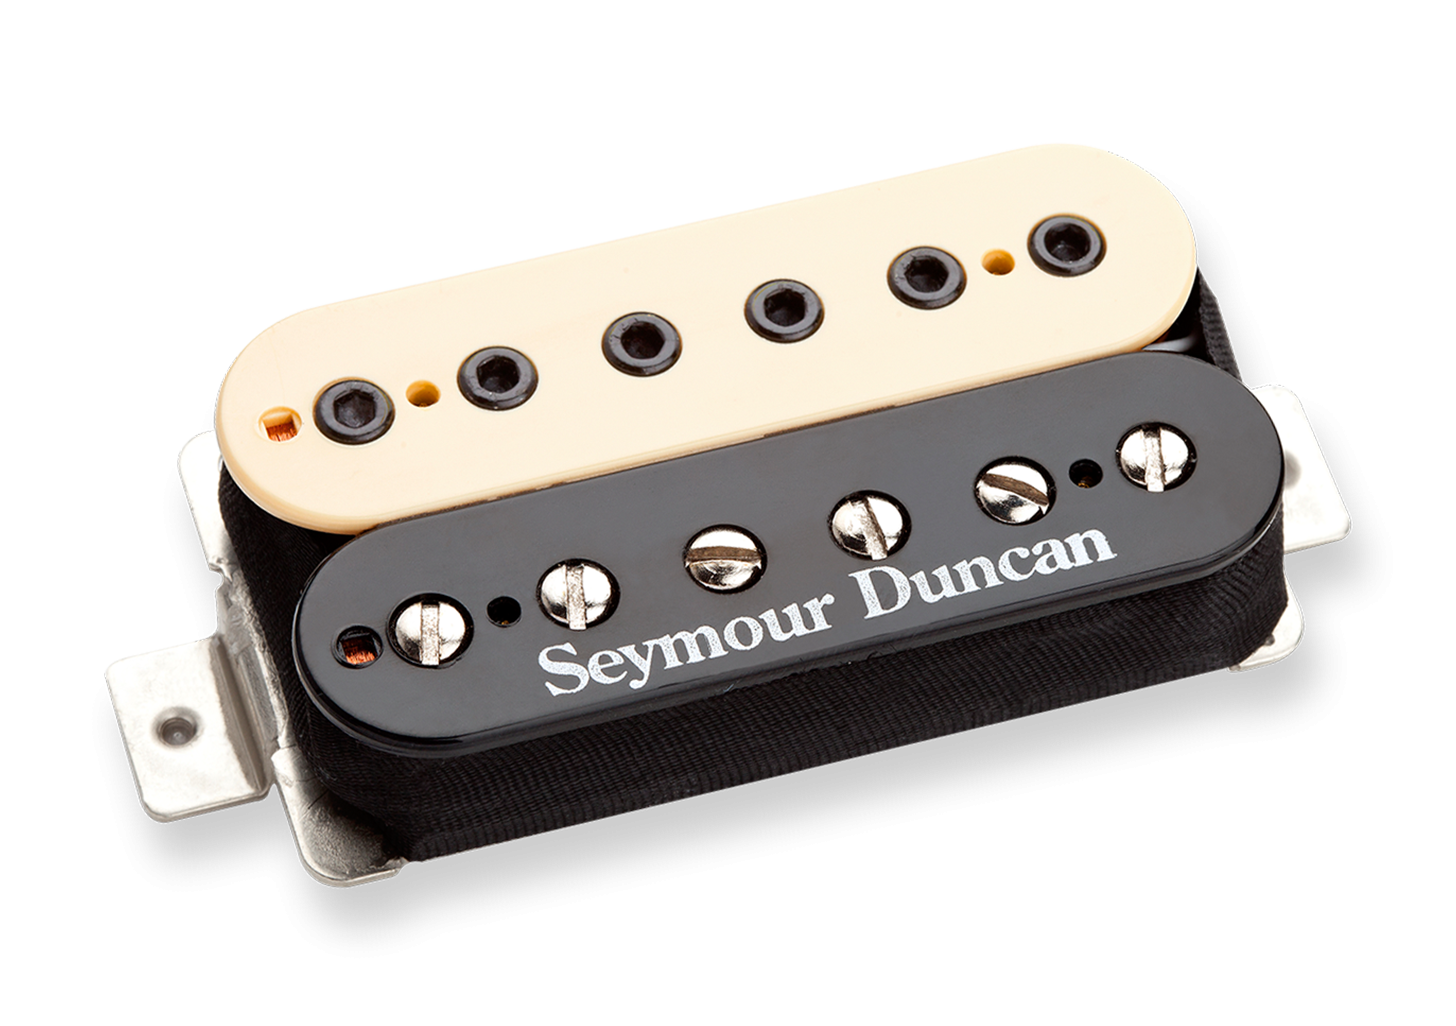 Seymour Duncan Screamin' Demon - TB-12 Reverse Zebra